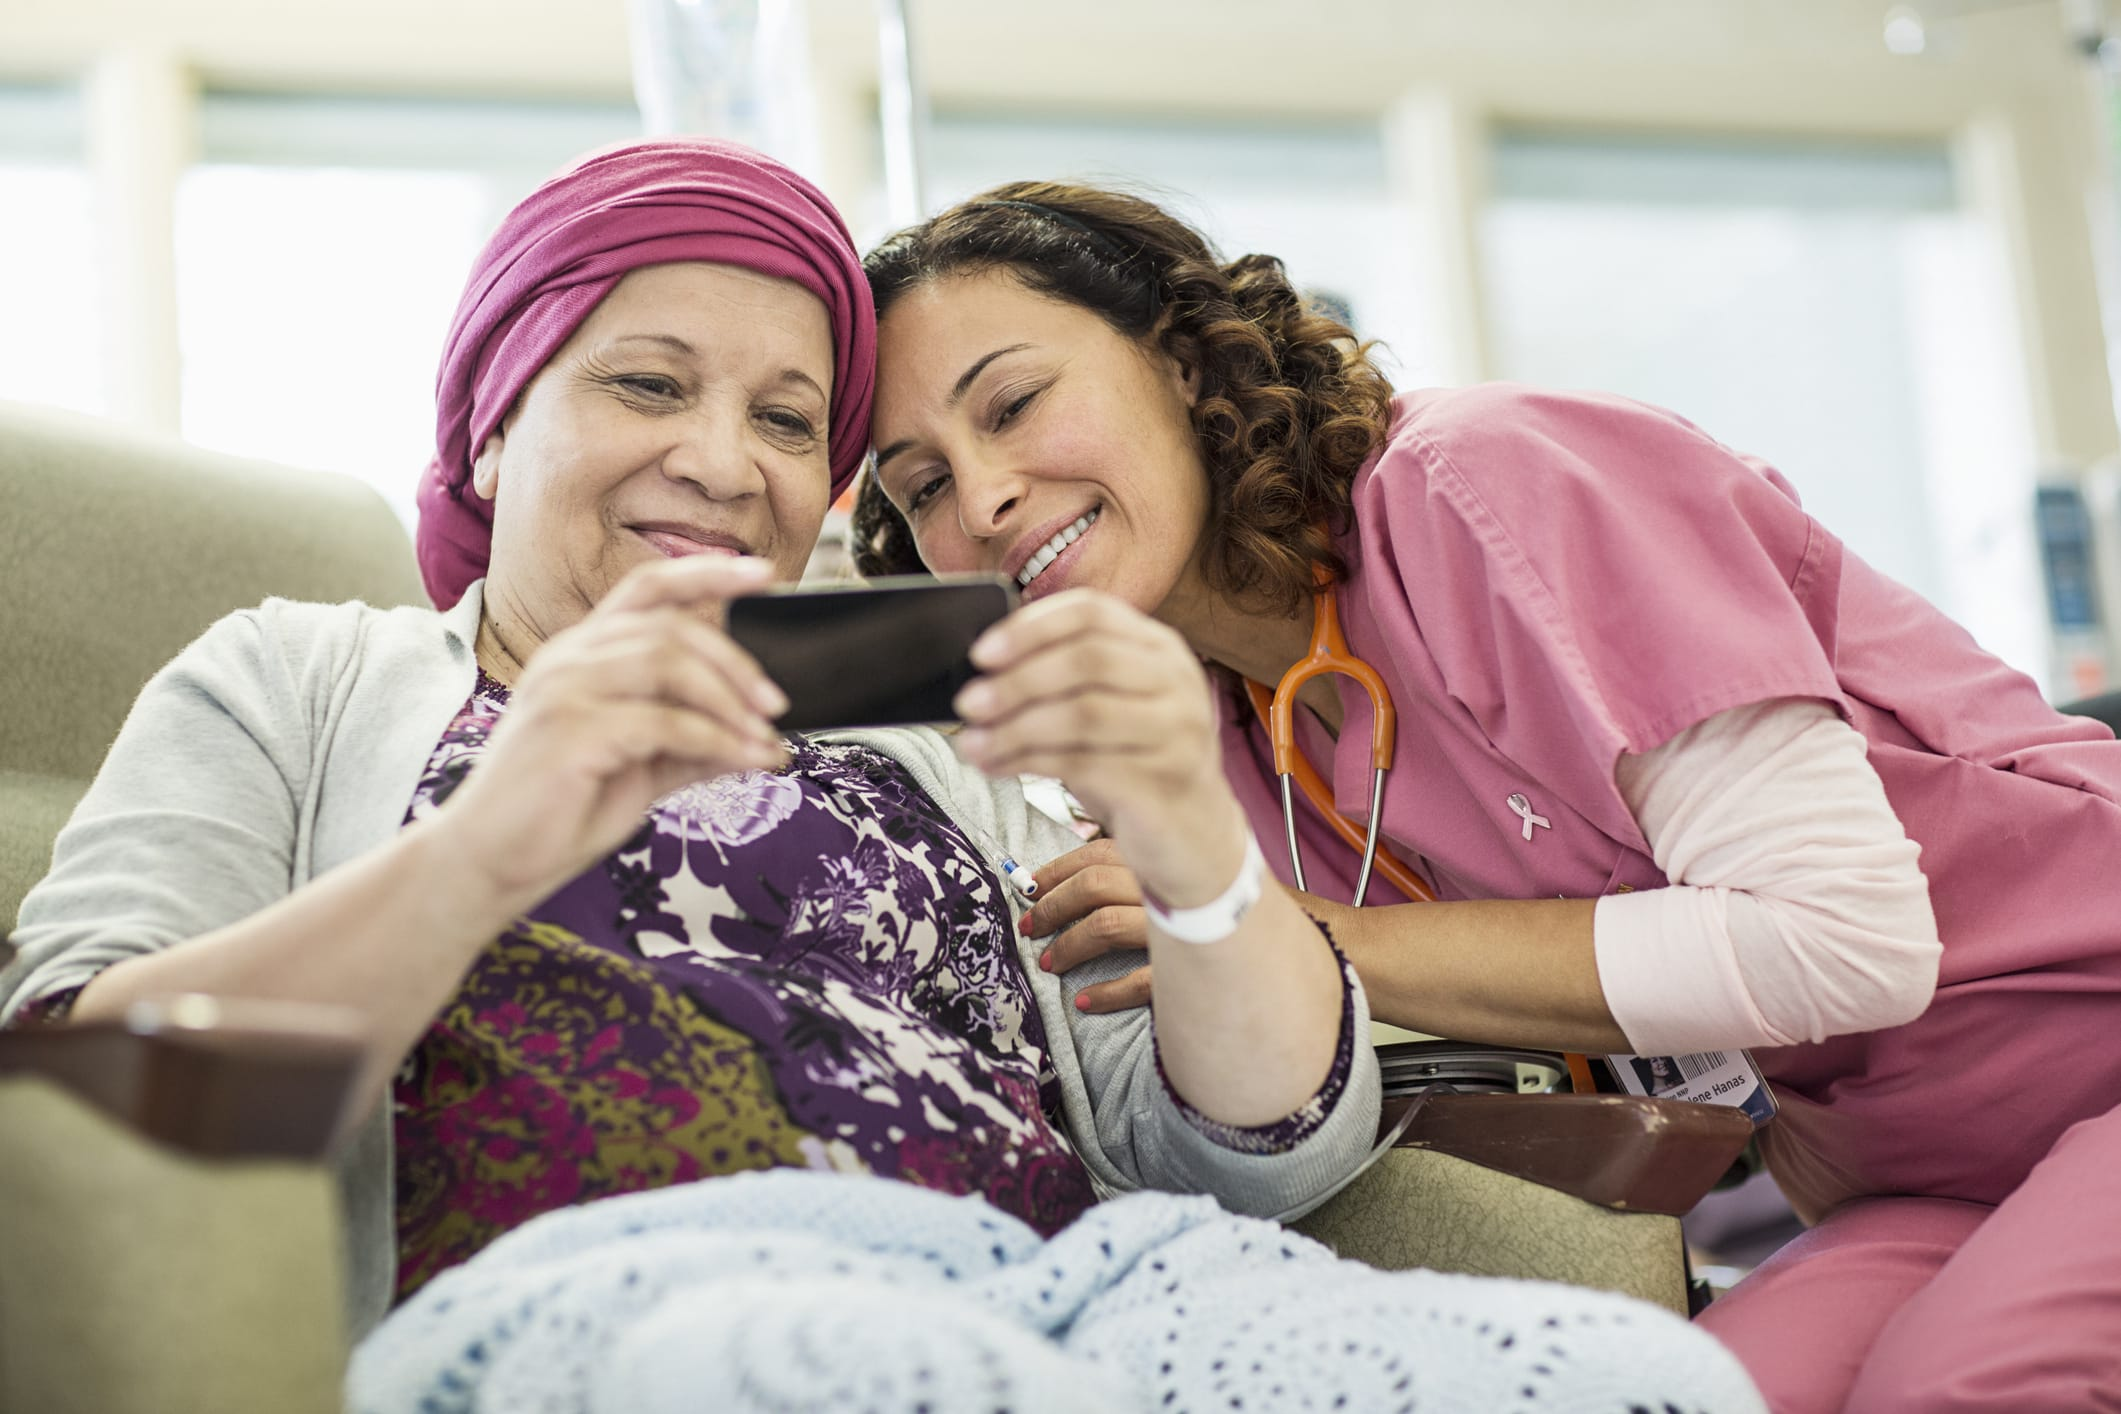 A patient receiving chemotherapy and a cancer treatment specialist look at photos on a phone together